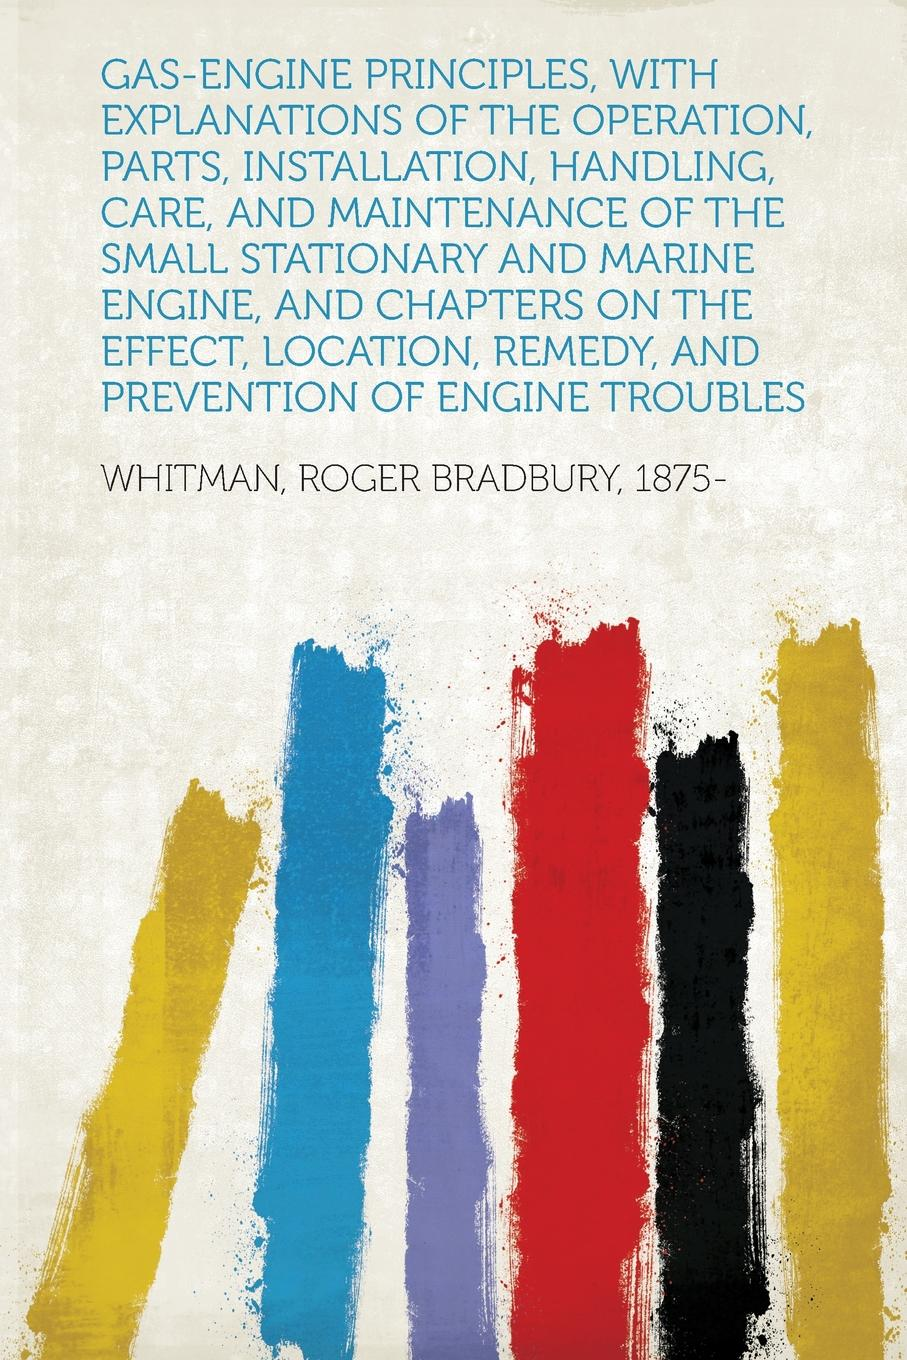 Whitman Roger Bradbury 1875- Gas-Engine Principles, With Explanations of the Operation, Parts, Installation, Handling, Care, and Maintenance of the Small Stationary and Marine Engine, and Chapters on the Effect, Location, Remedy, and Prevention of Engine Troubles small engine repair